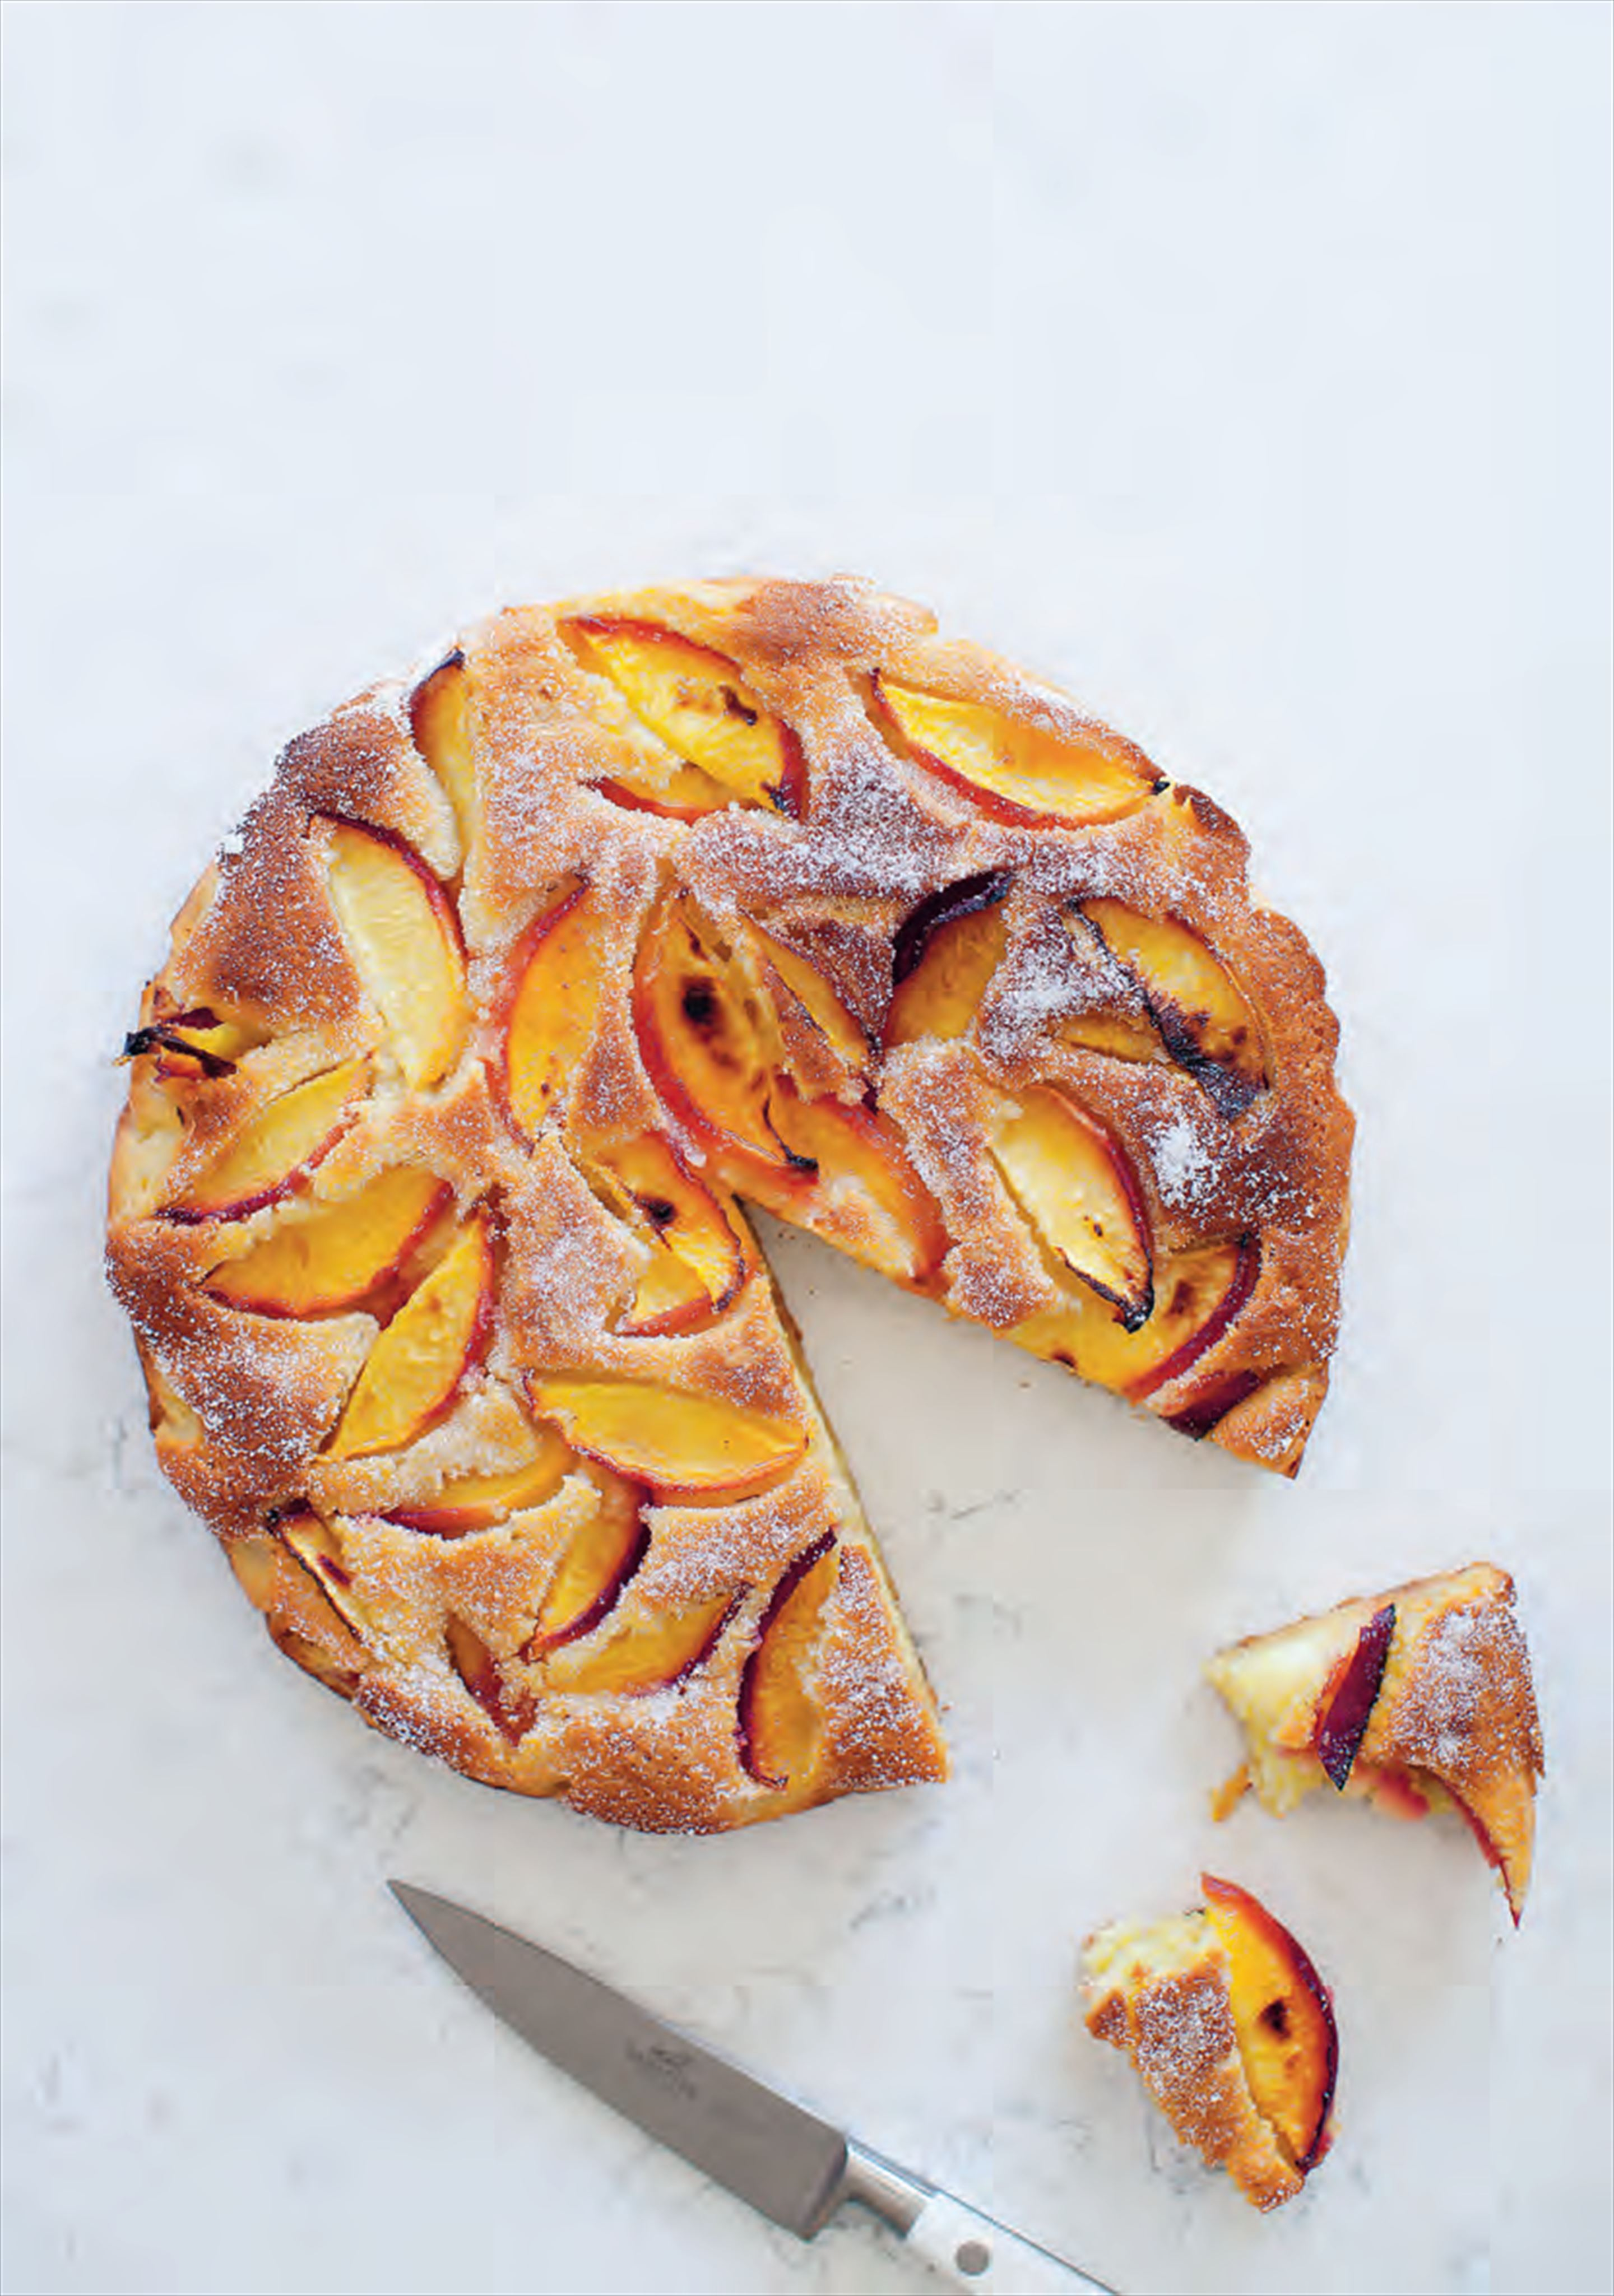 Marzipan and roasted nectarine cake